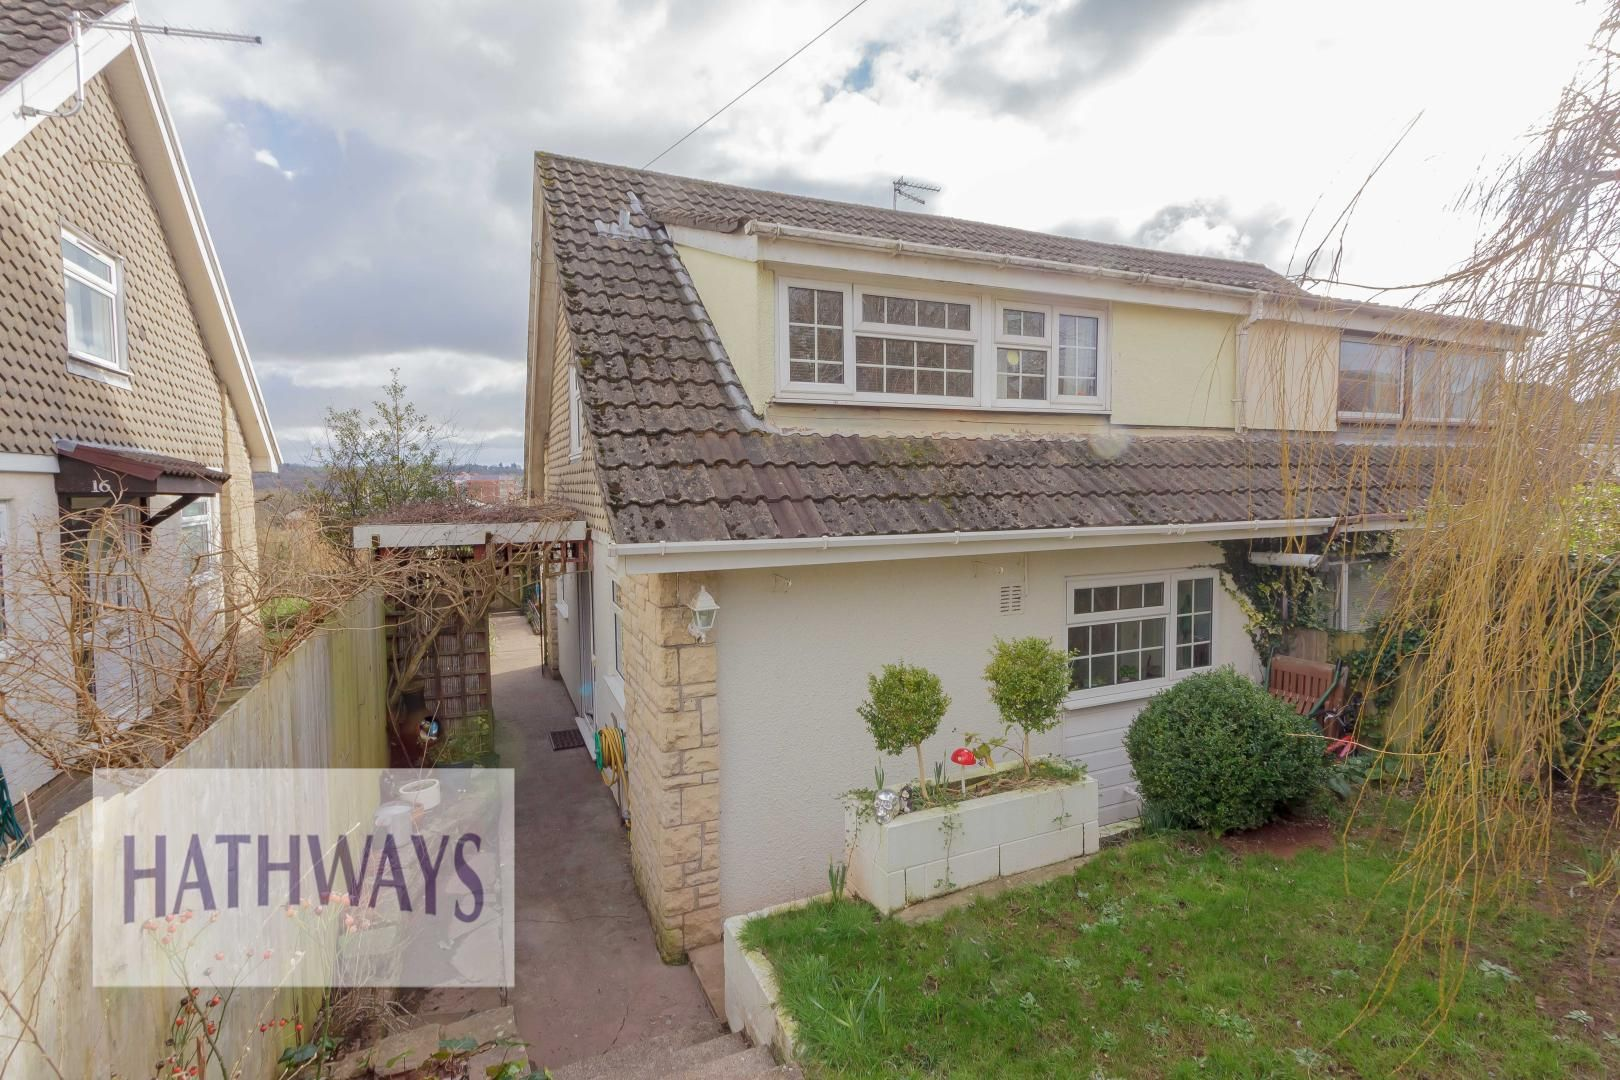 3 bed house for sale in Eastfield View, NP18